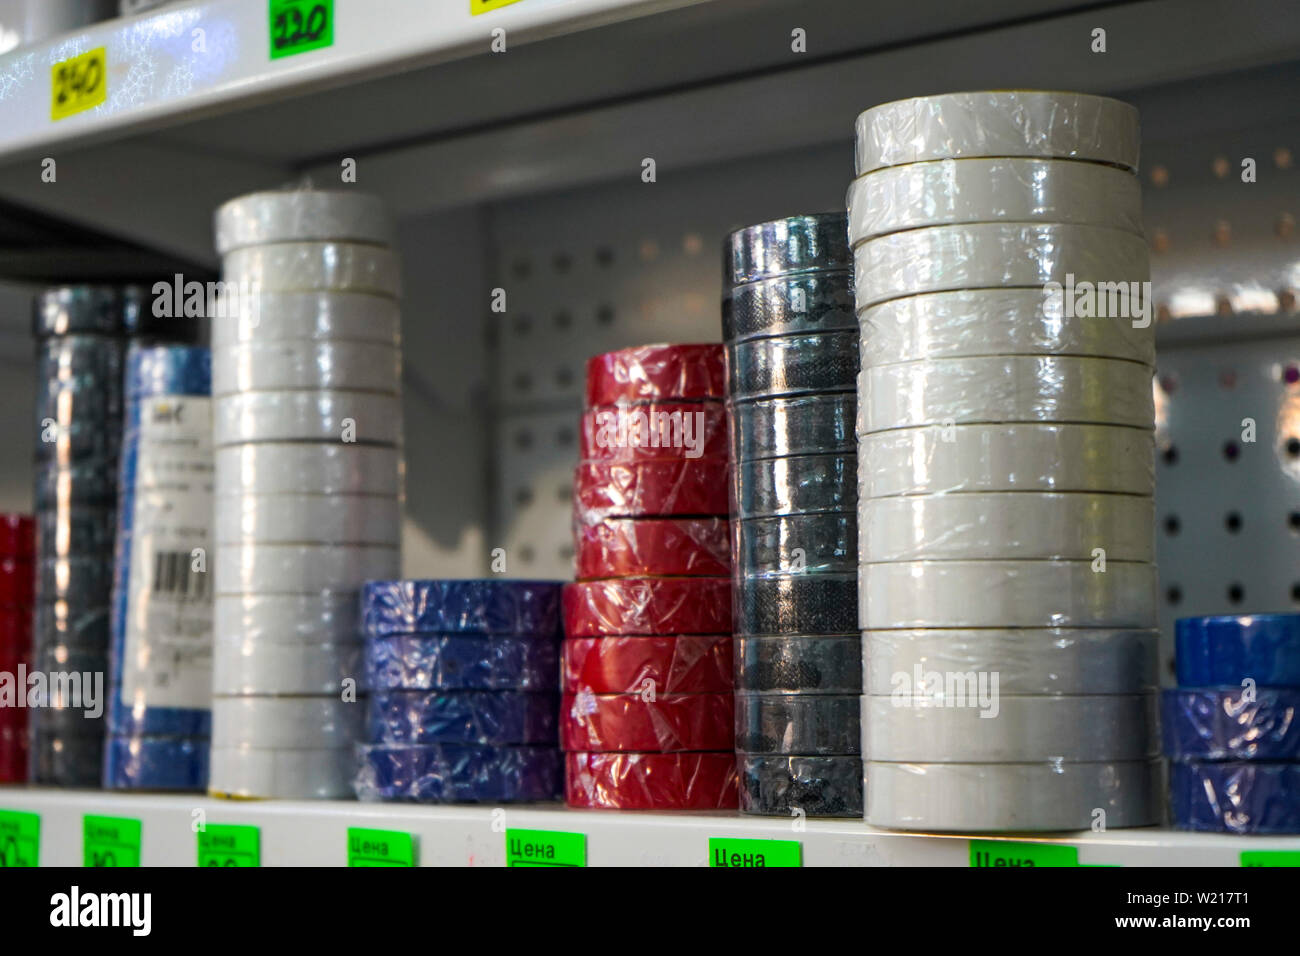 Chelyabinsk Region, Russia - June 2019. Electrical goods store. Sale of electrical tape. Stock Photo